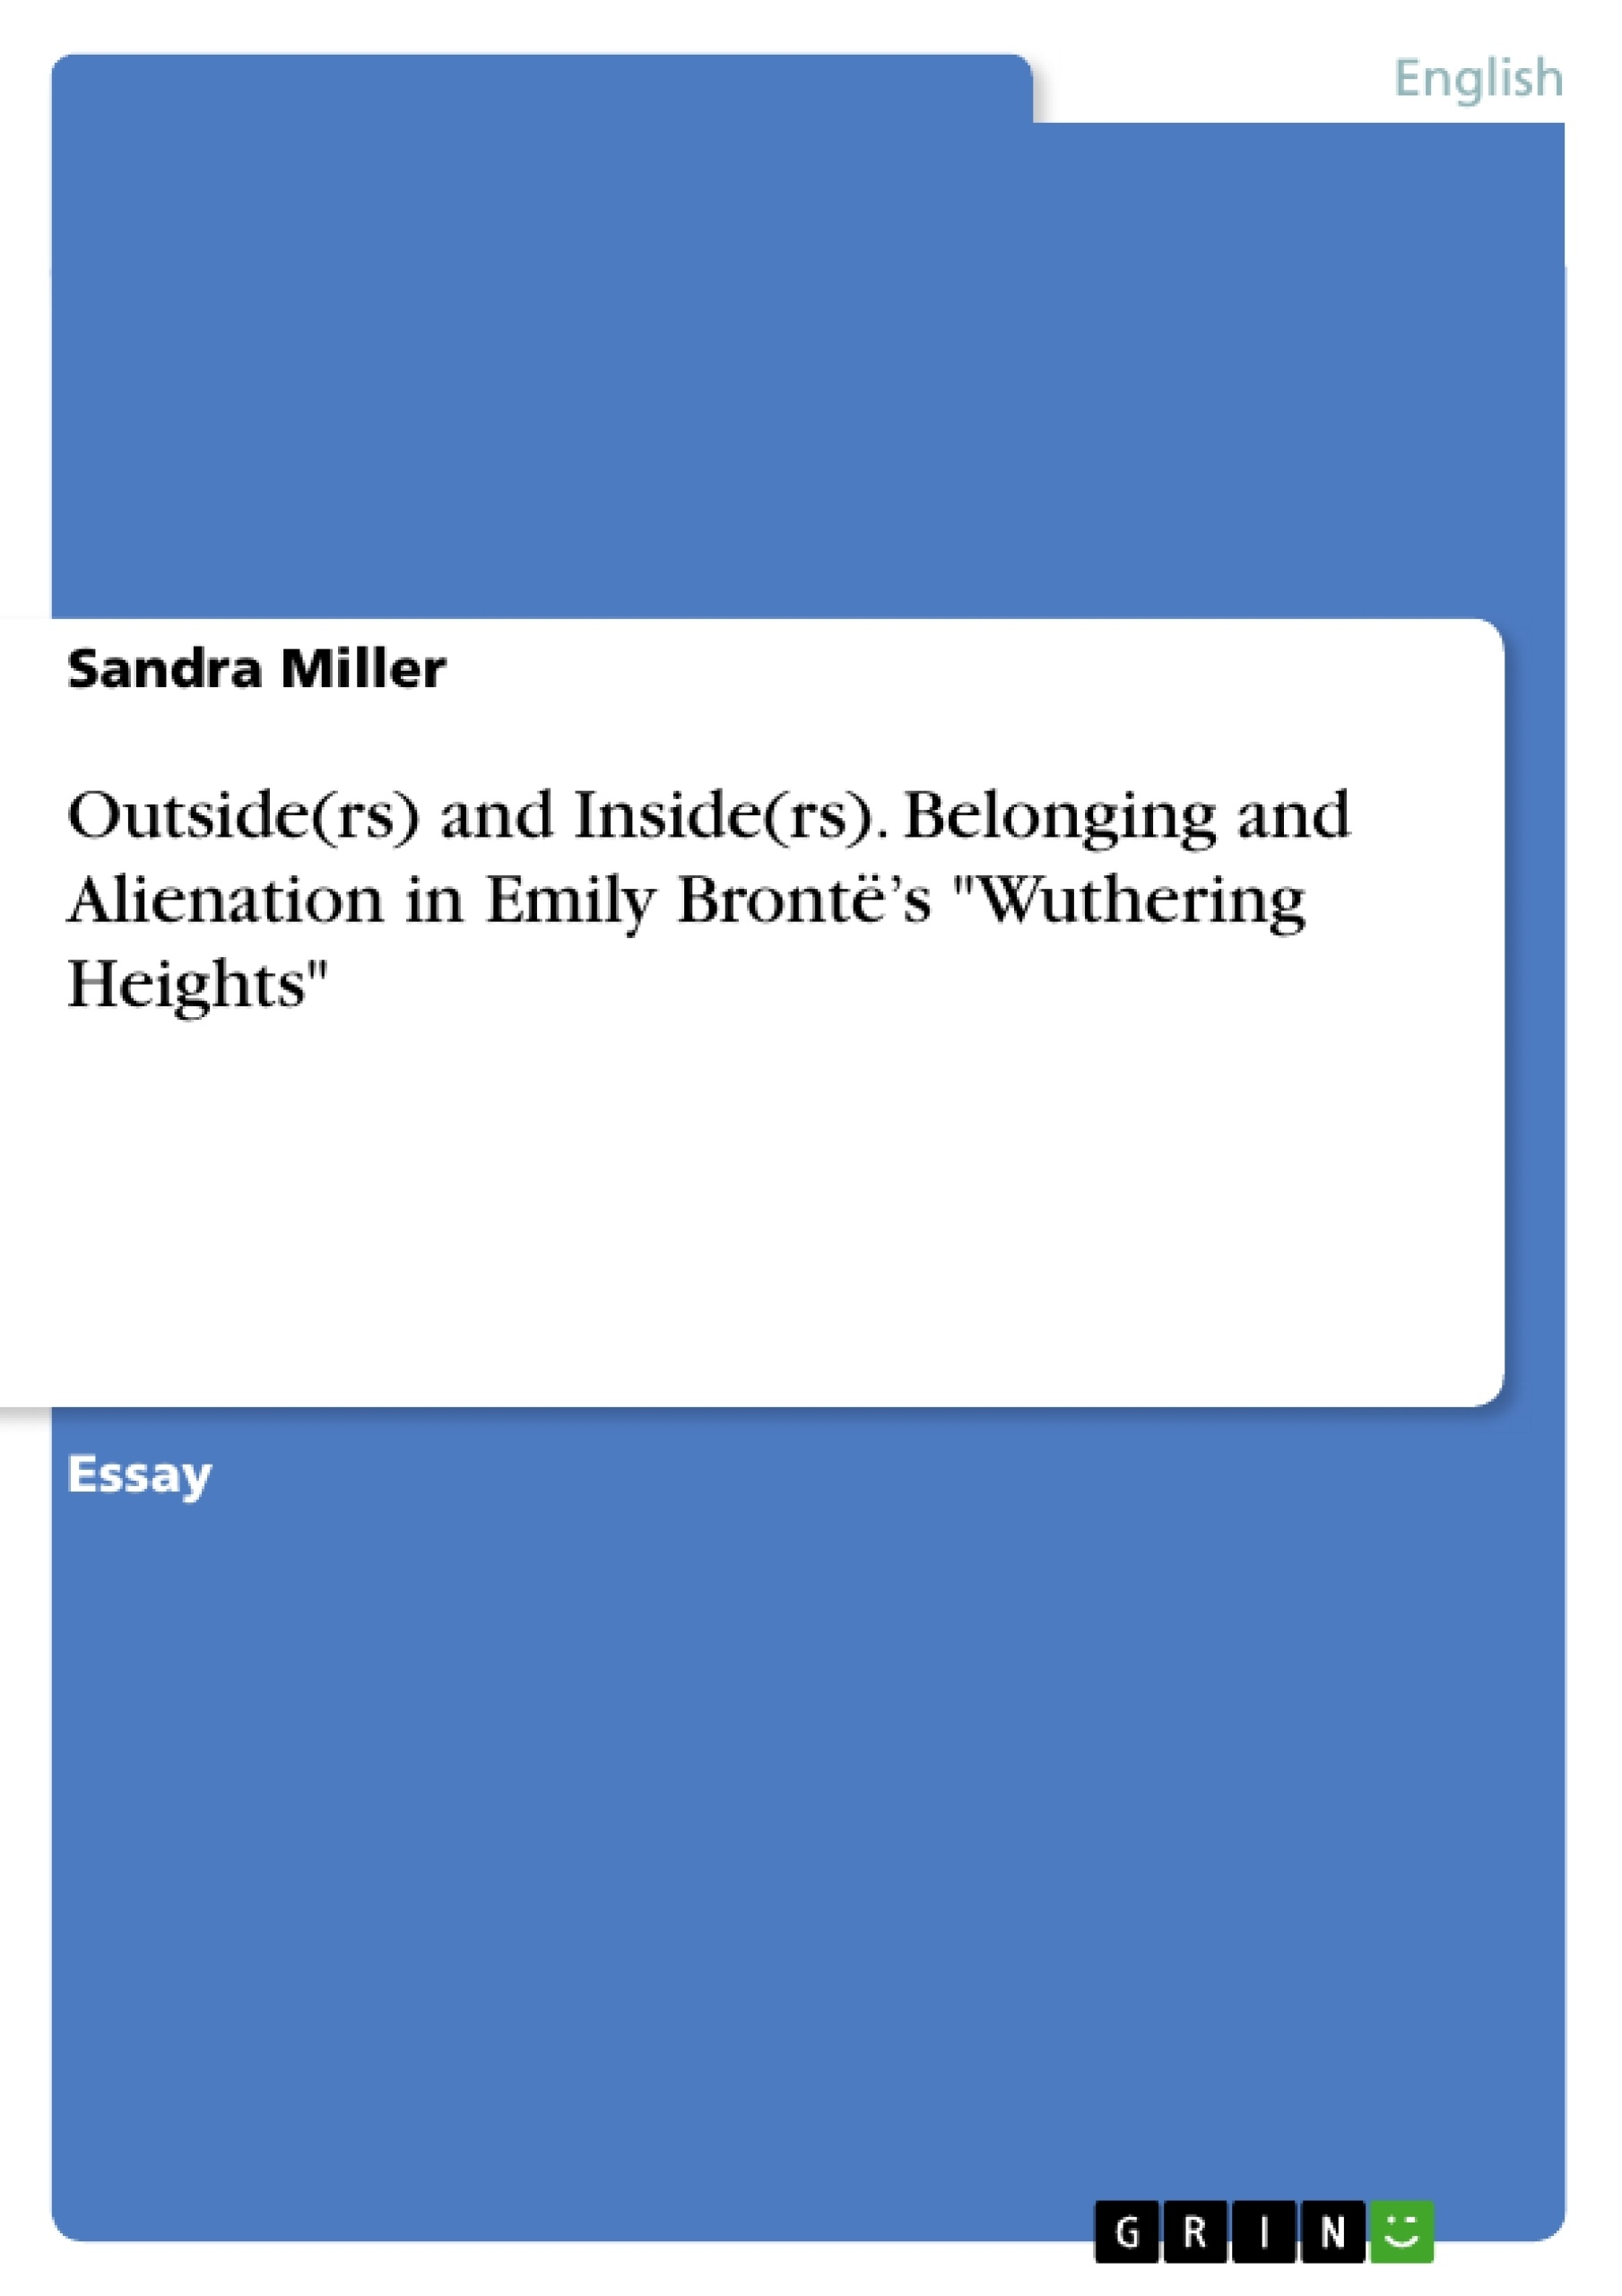 belonging alienation essay